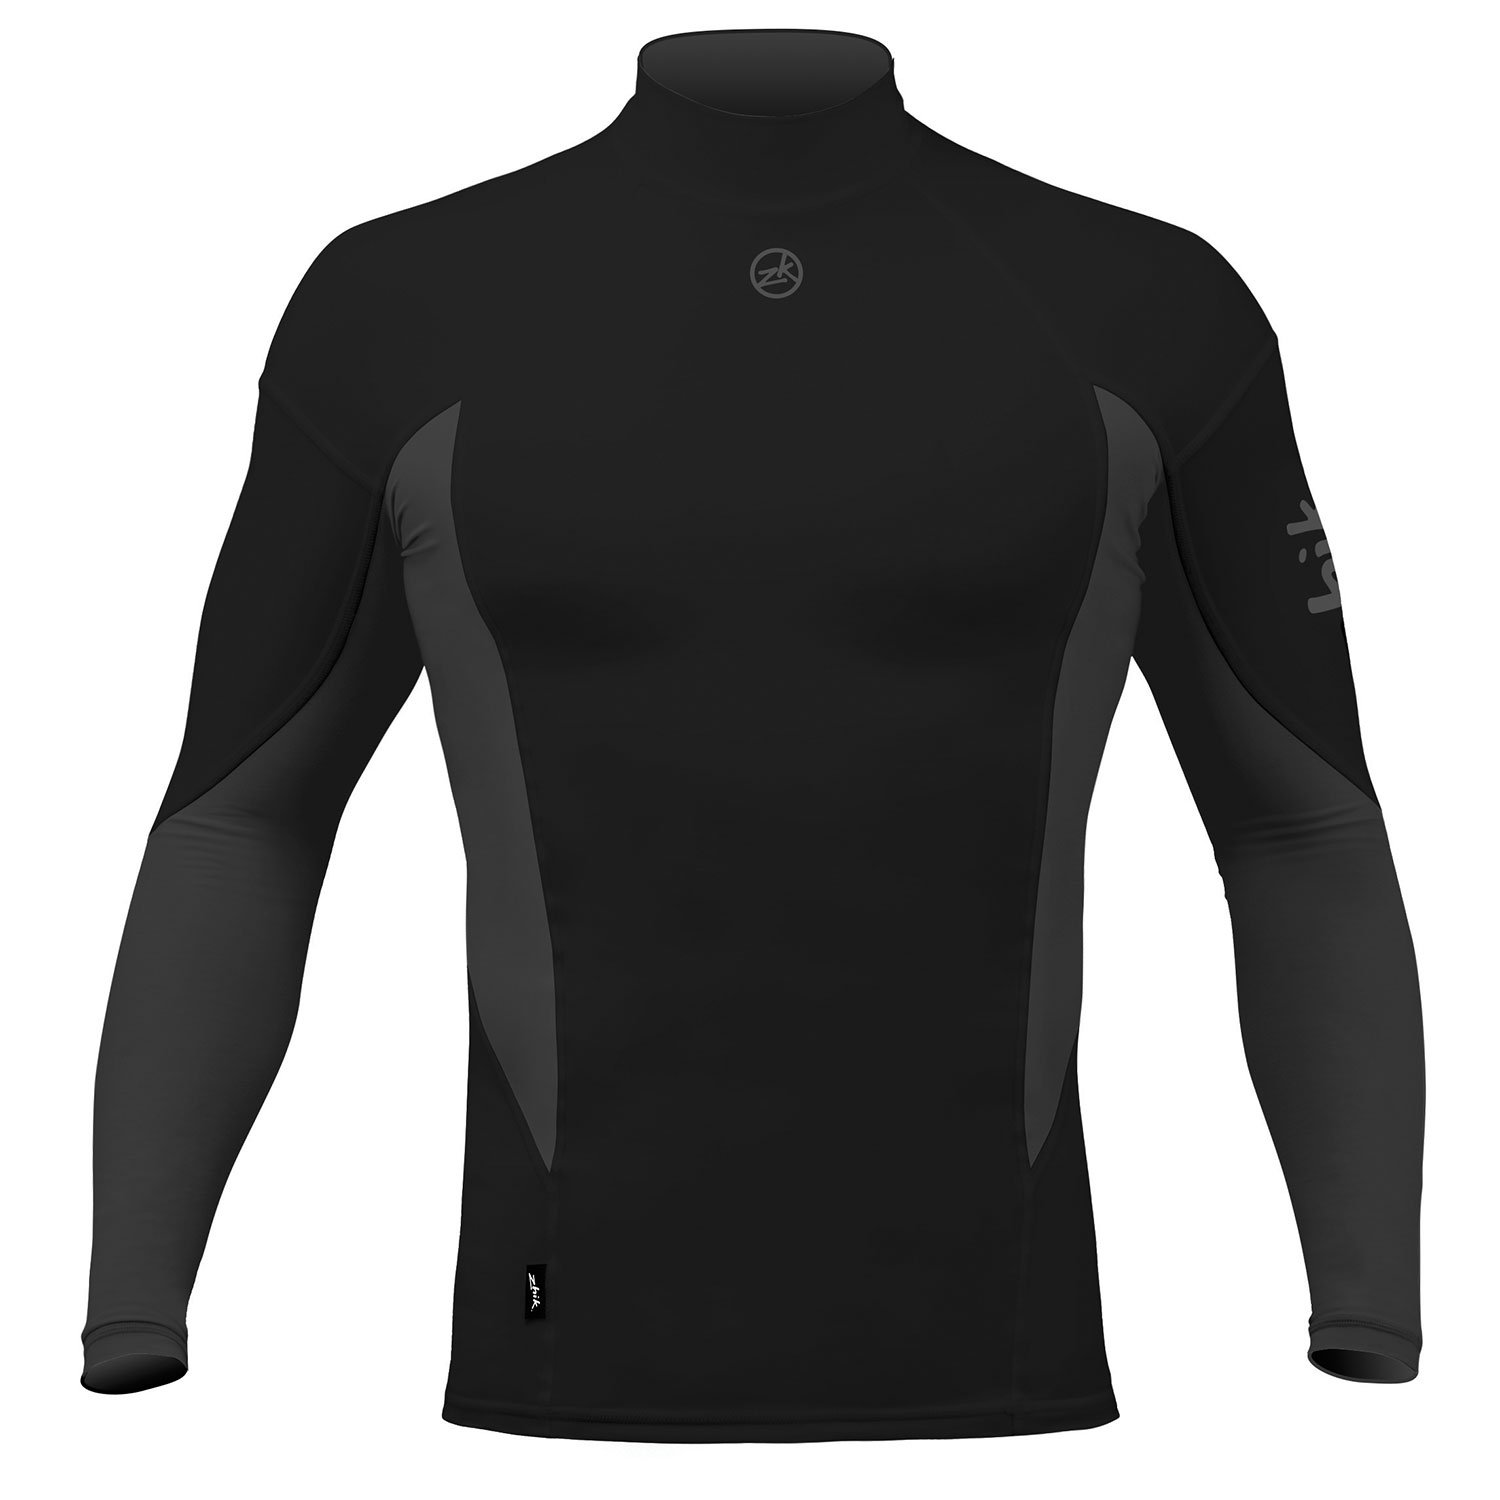 Zhik Long Sleeve Spandex Top - Black